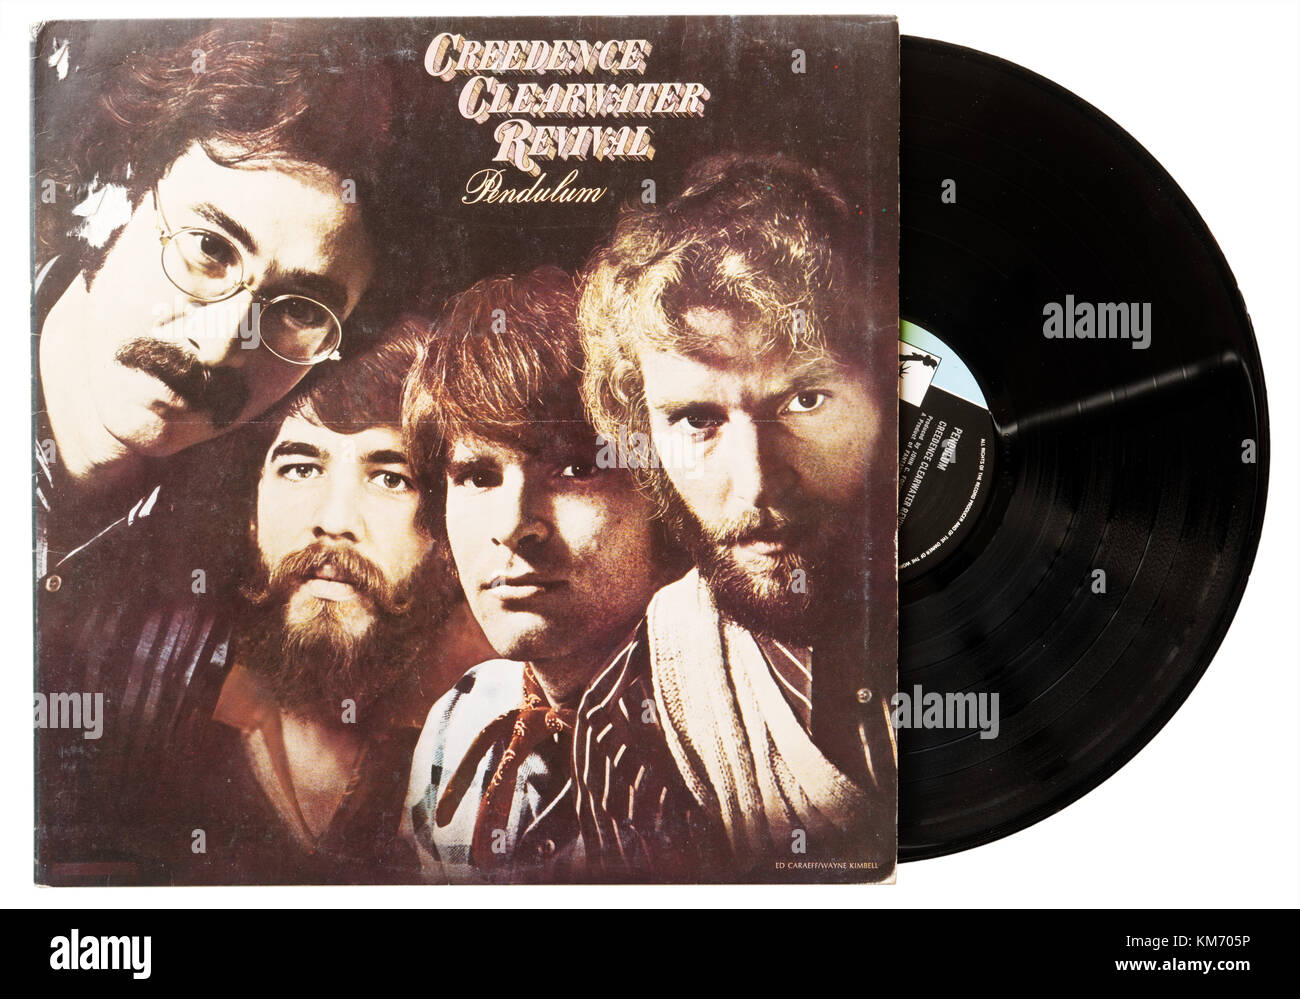 Creedence Clearwater Revival Pendel album Stockbild